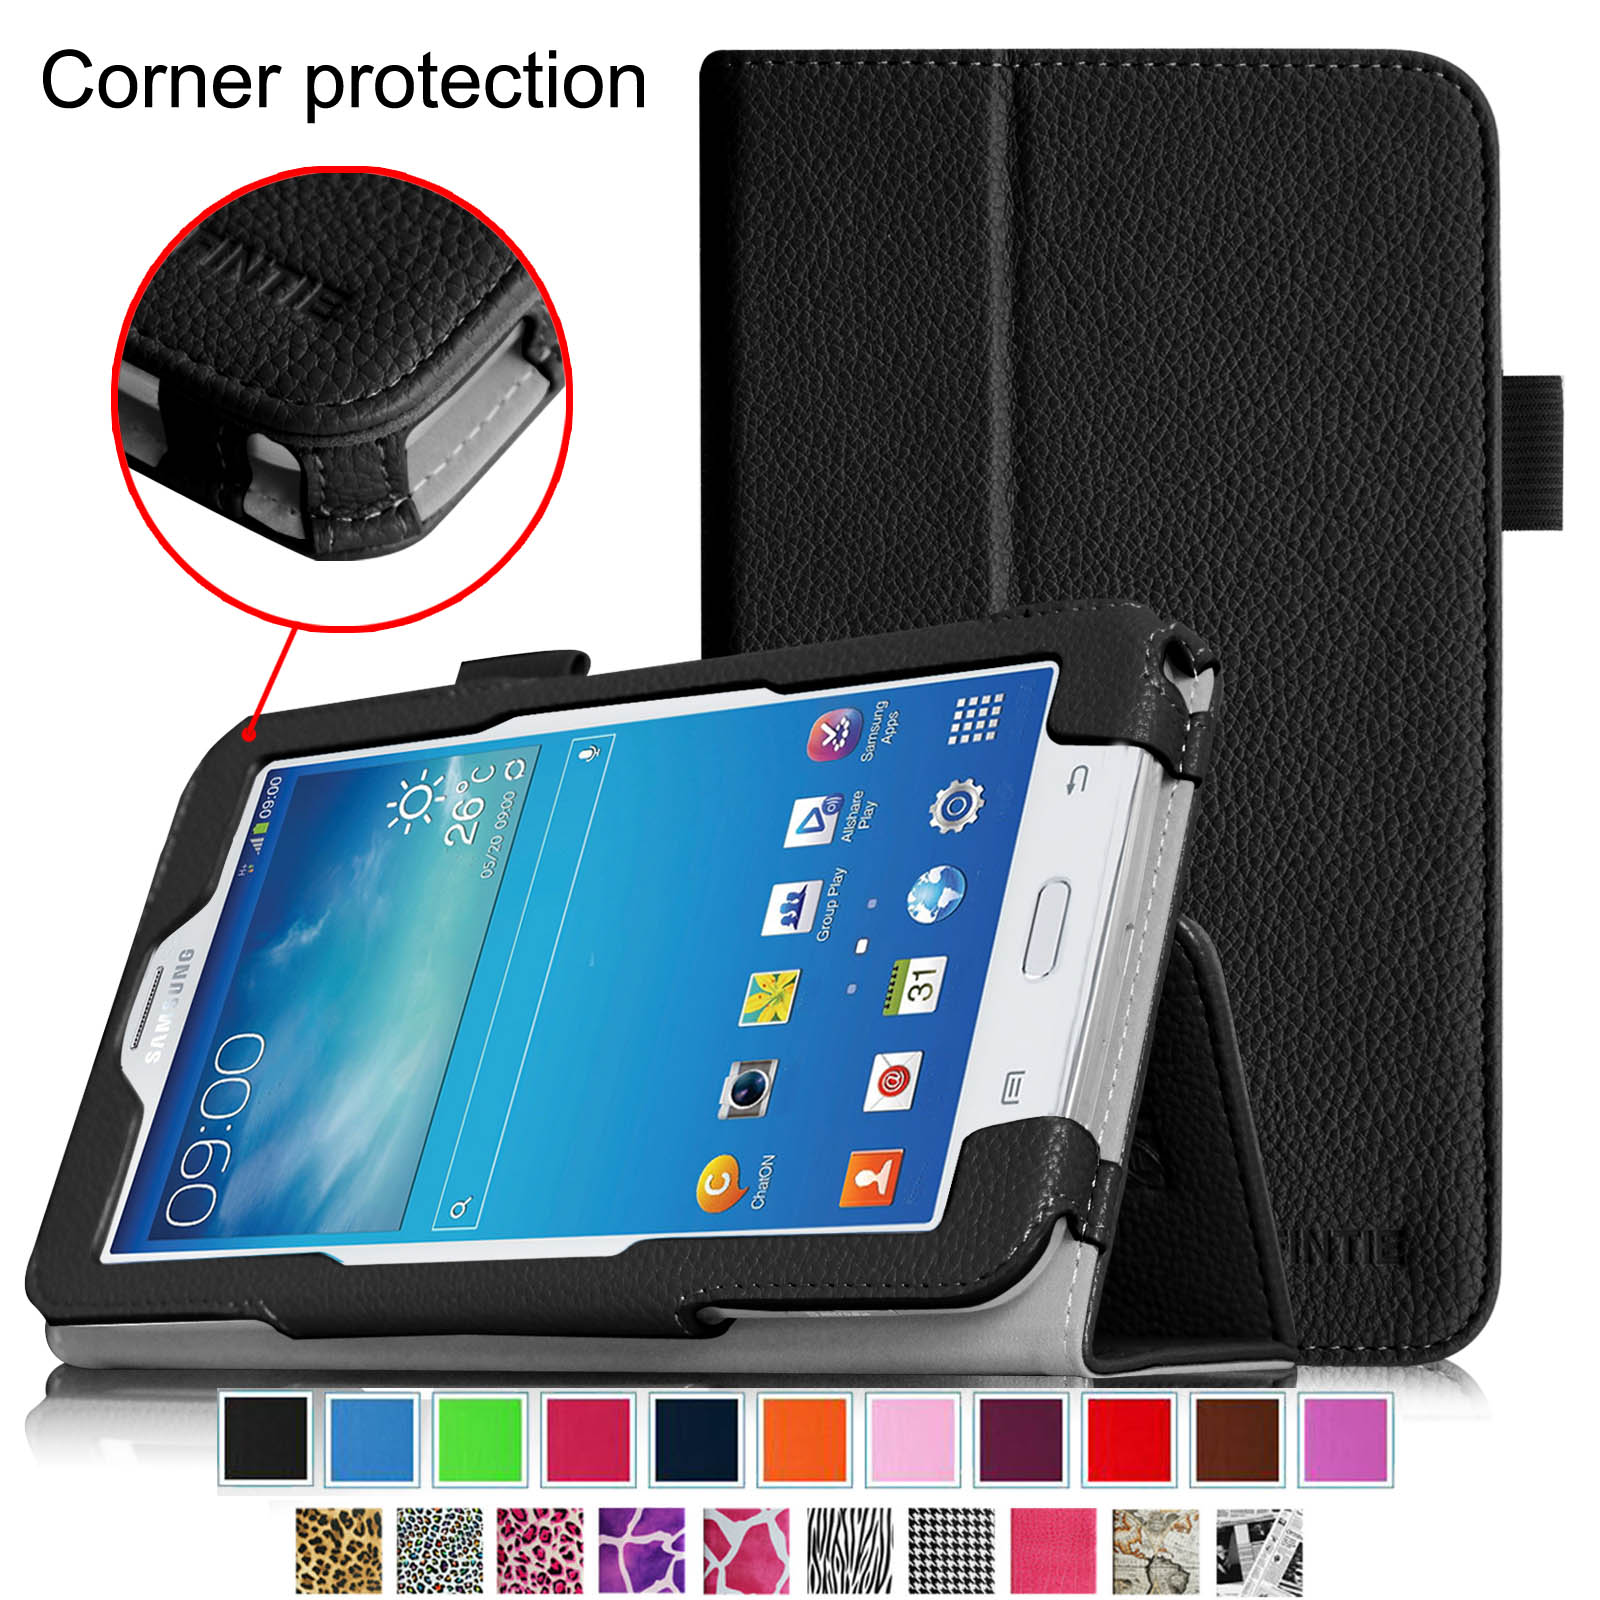 Fintie Folio Case for Samsung Galaxy Tab E Lite 7.0 SM-T113 / Tab 3 Lite 7.0 SM-T110 SM-T111 Tablet Stand Cover, Black